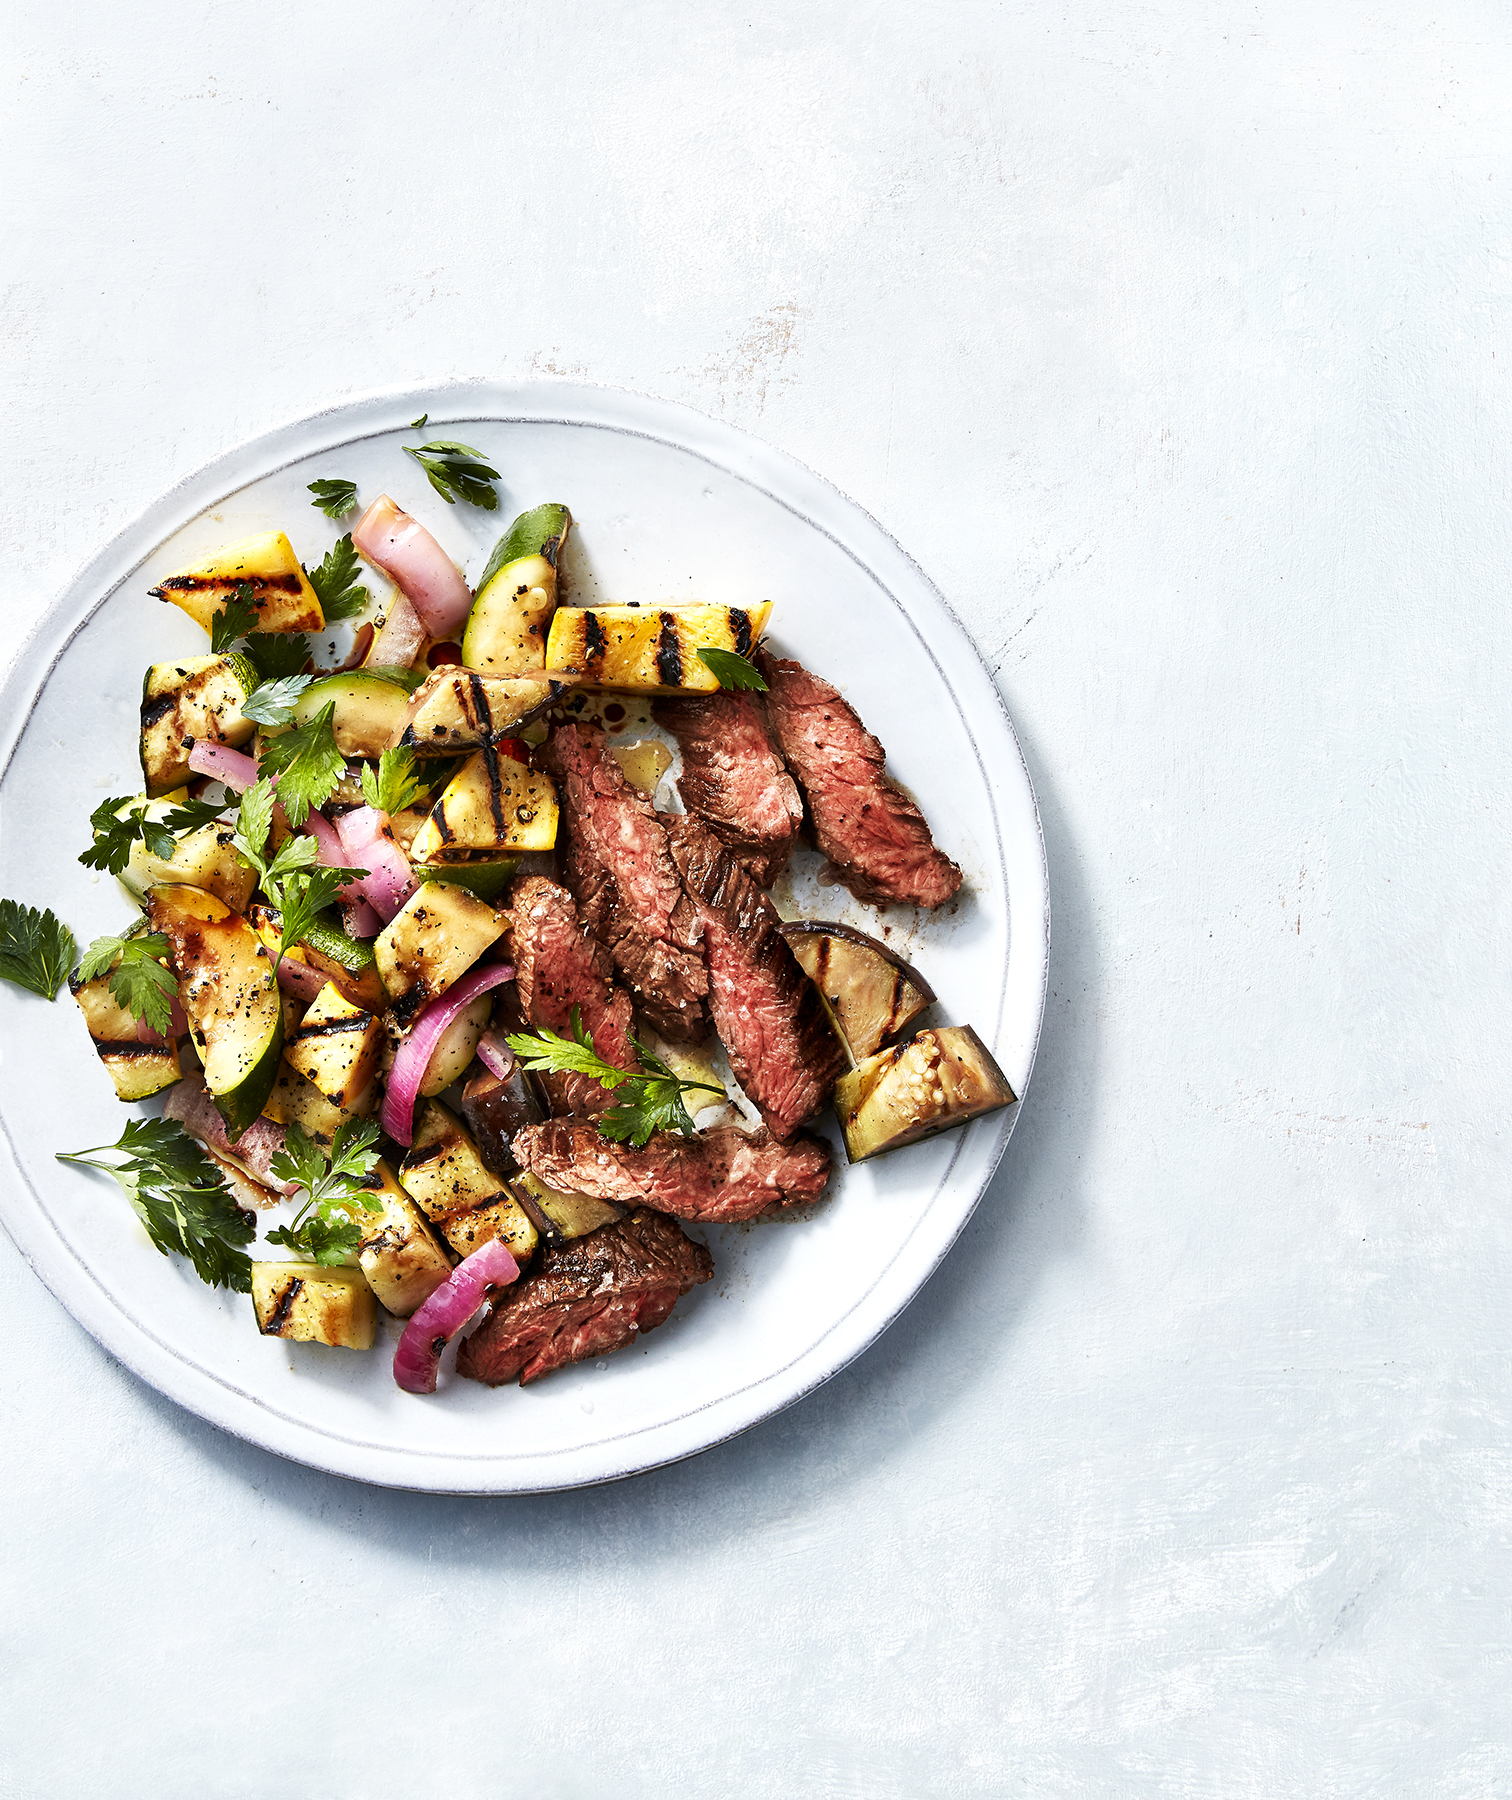 Grilled Skirt Steak With Squash Ratatouille